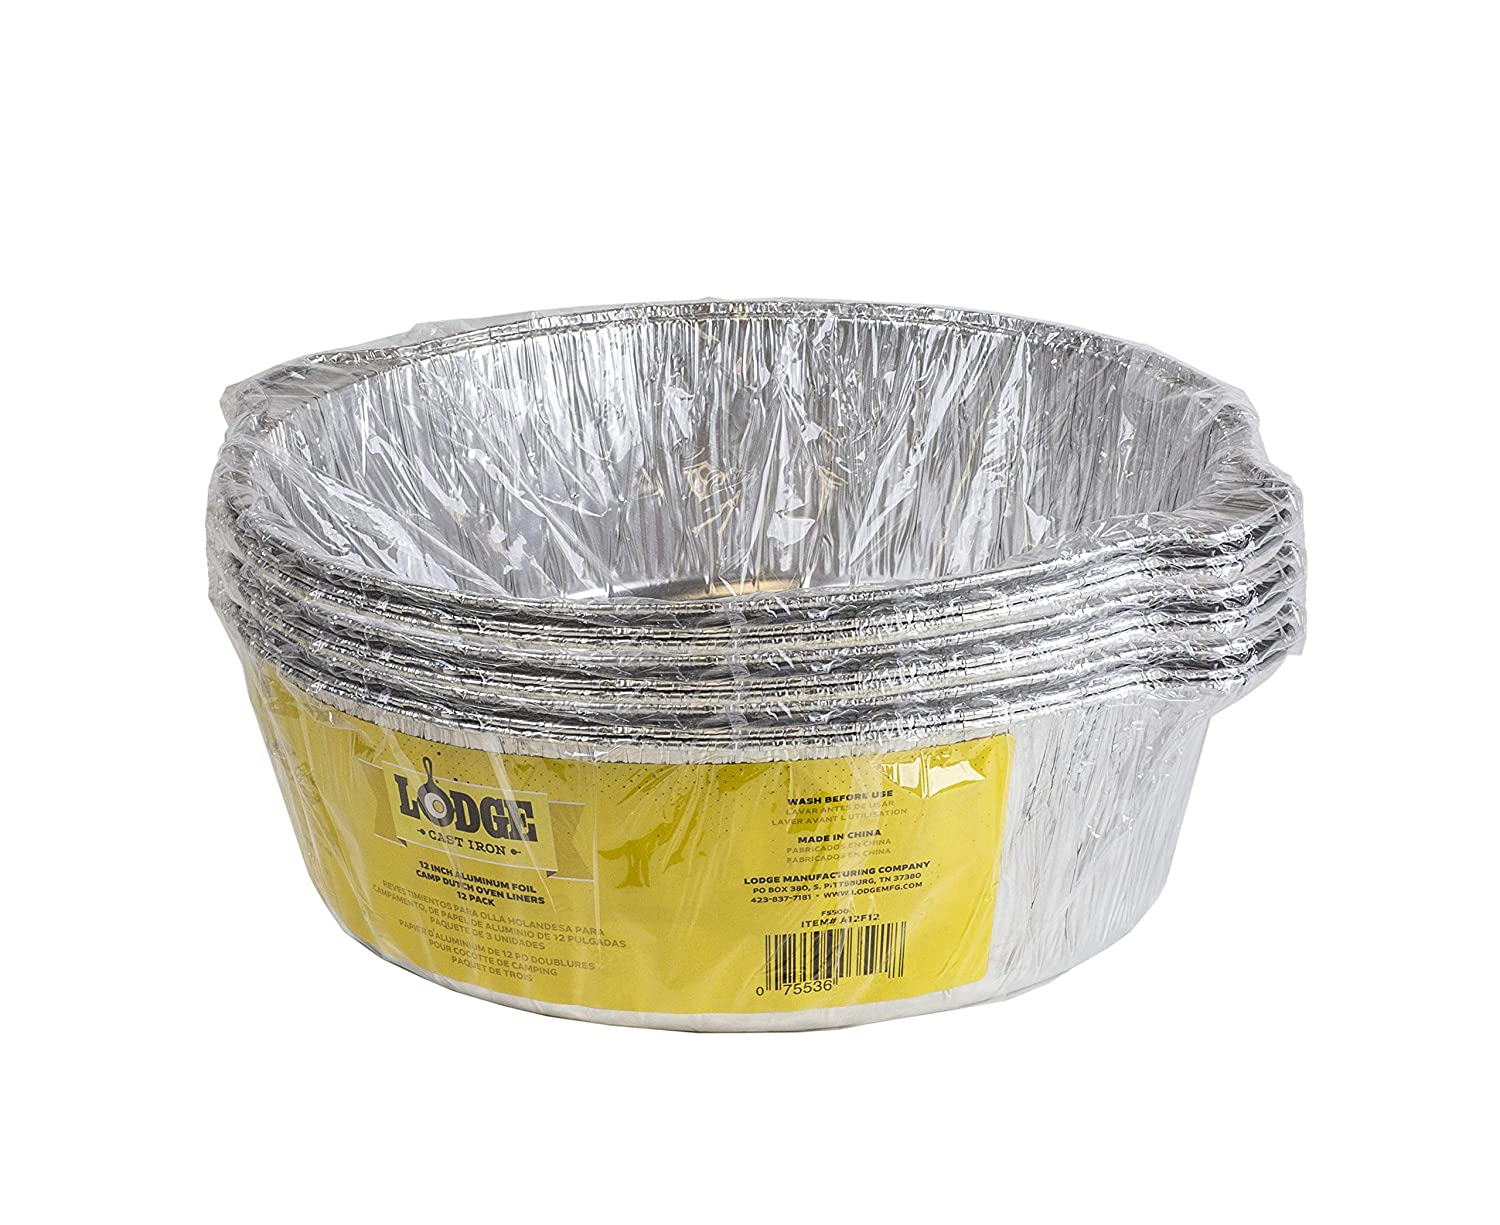 Lodge A12F12 12-Inch Aluminum Foil Dutch Oven Liners Pack, Silver